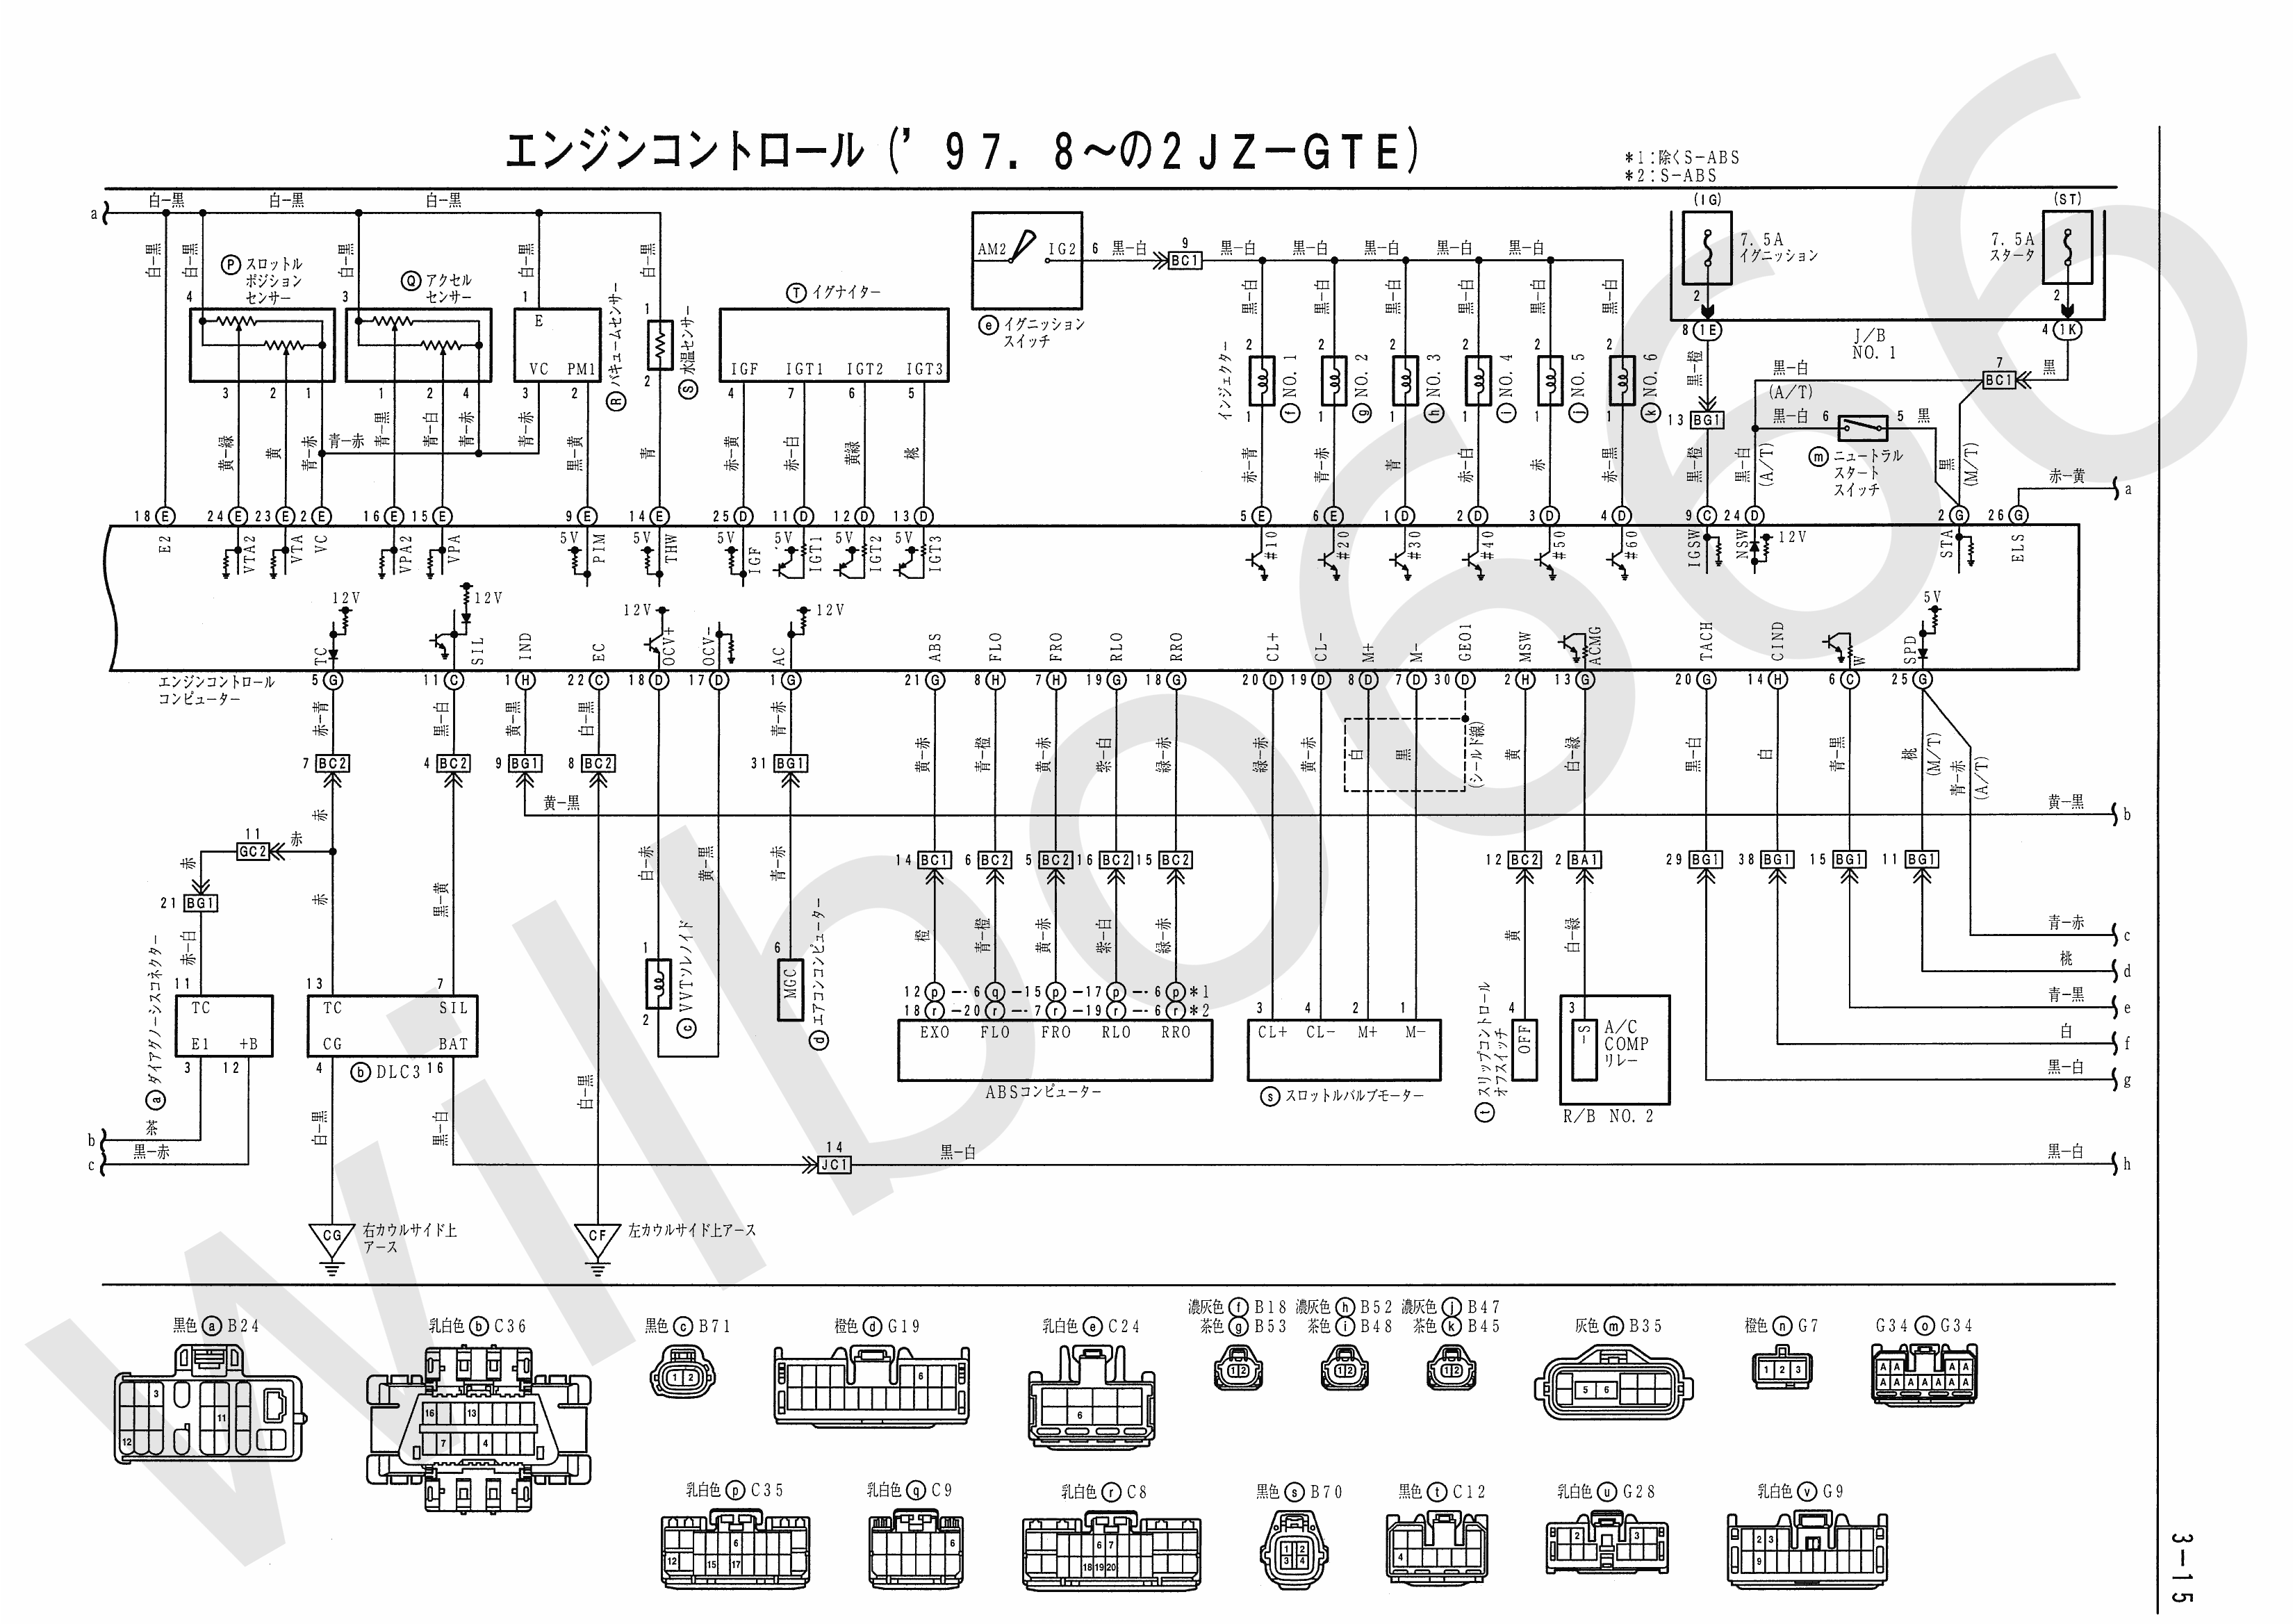 JZA80 Electrical Wiring Diagram 6742505 3 15 wilbo666 2jz gte vvti jza80 supra engine wiring 2jzgte wiring diagram at mifinder.co